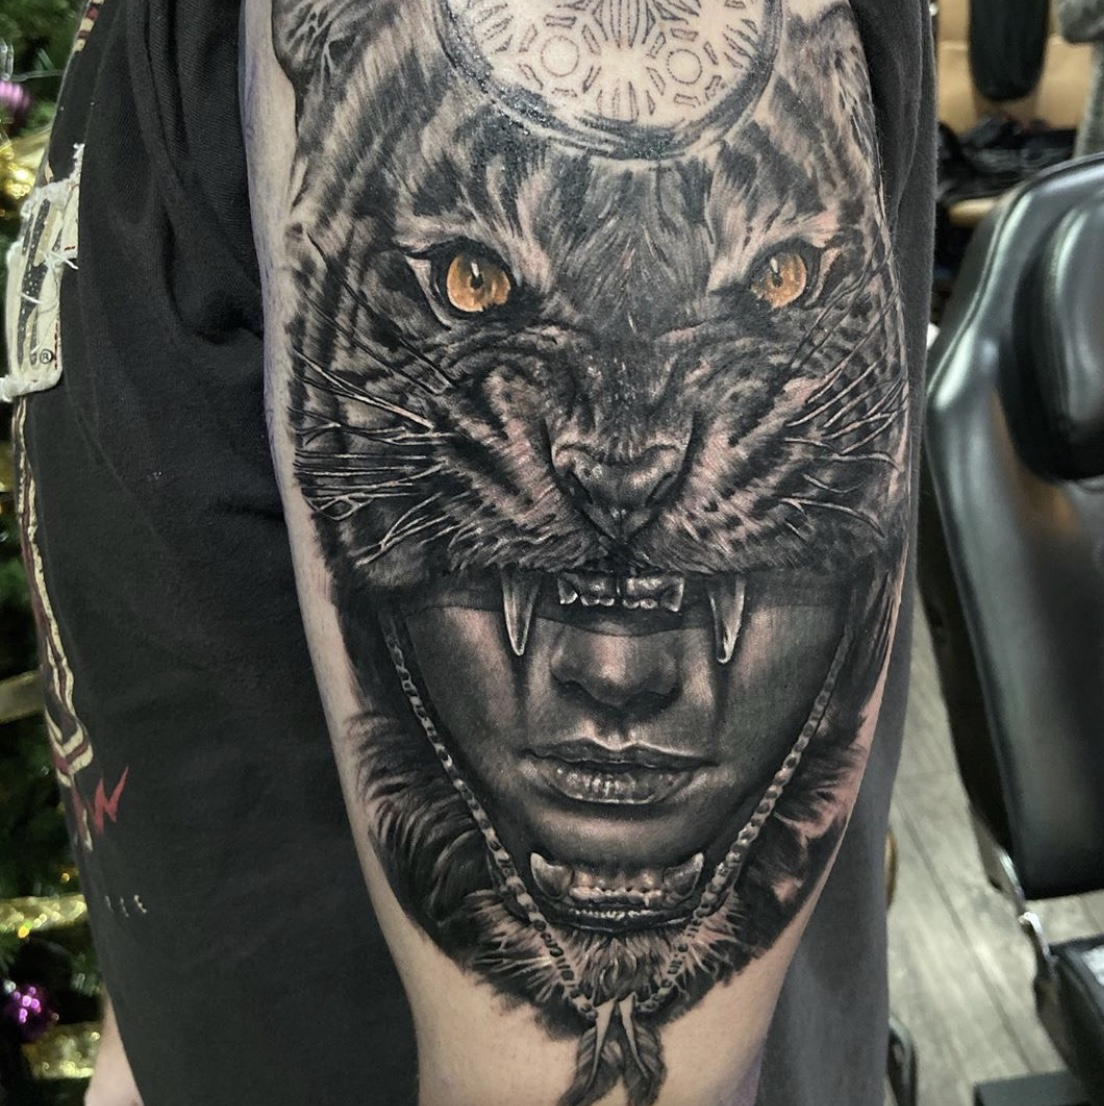 Woman and Tiger Realism Tattoo by Luke